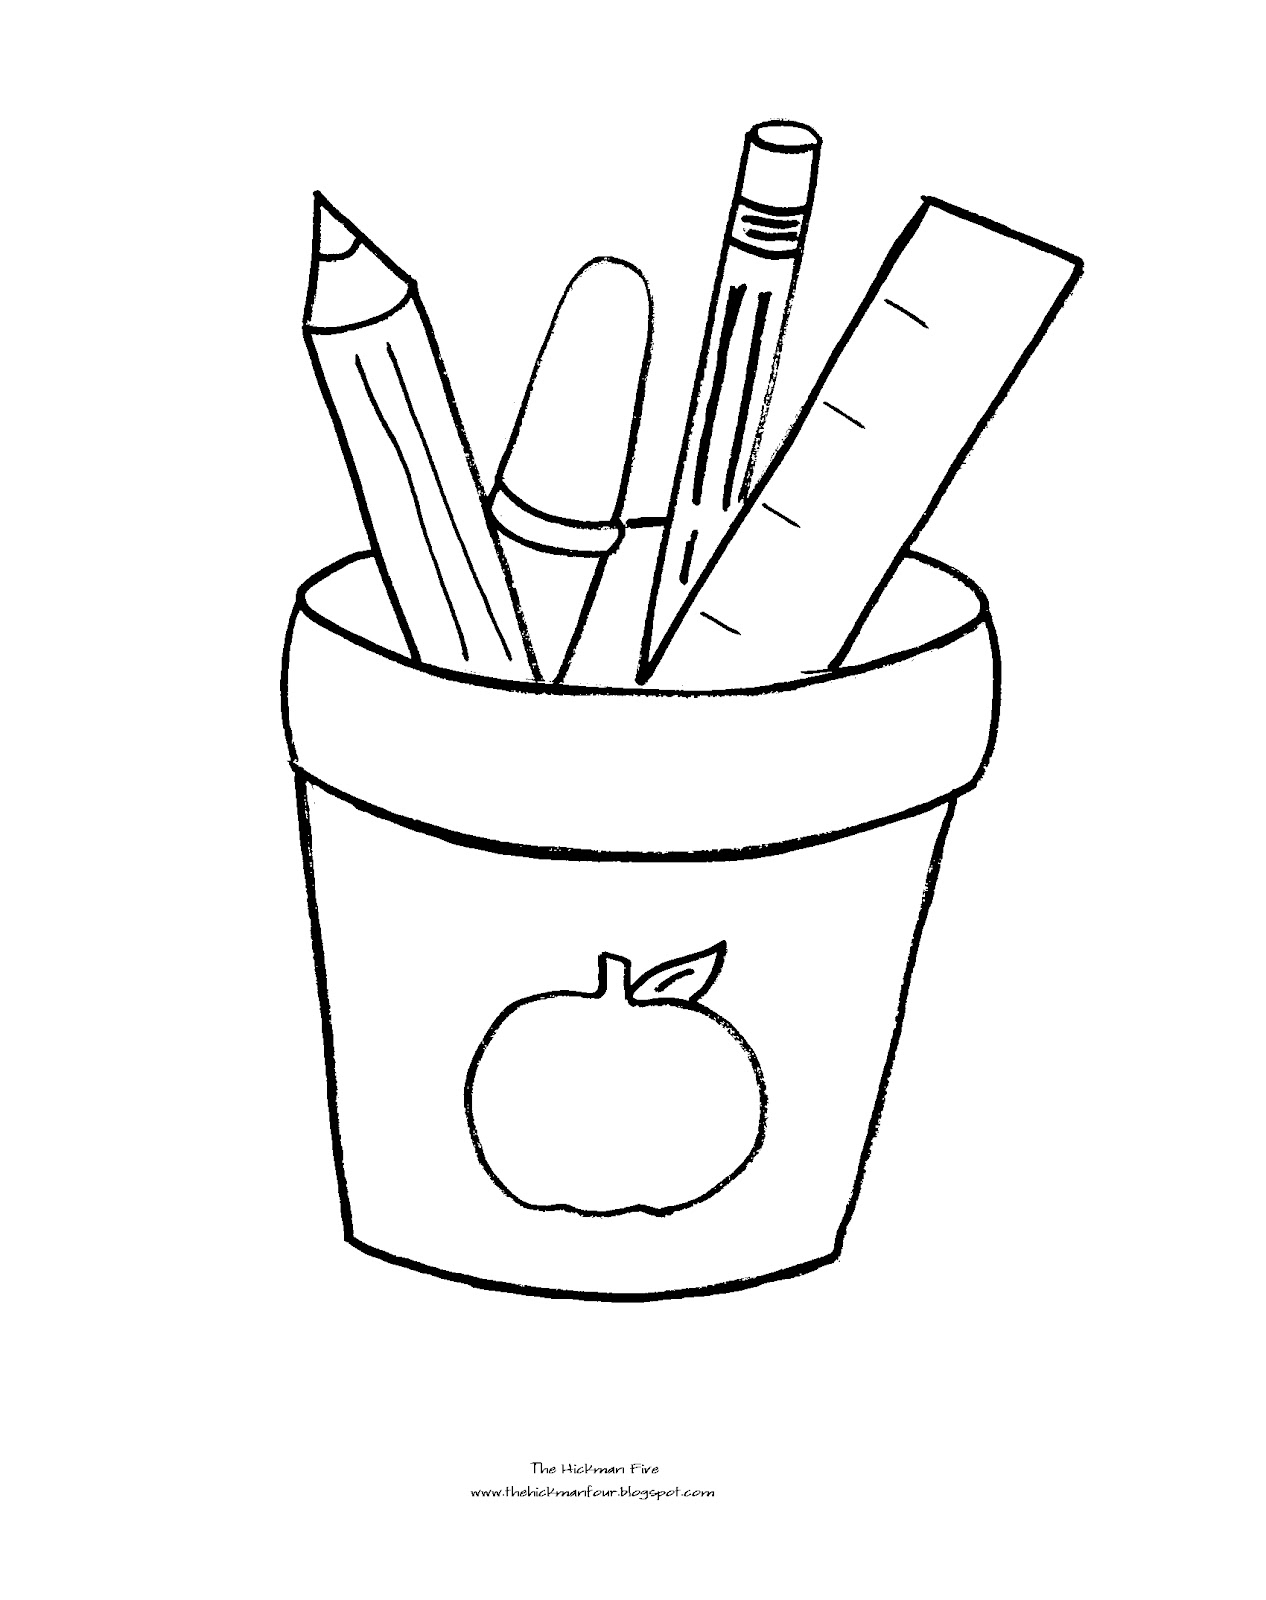 First day of school coloring pages for kindergarten for Back to school coloring pages printable